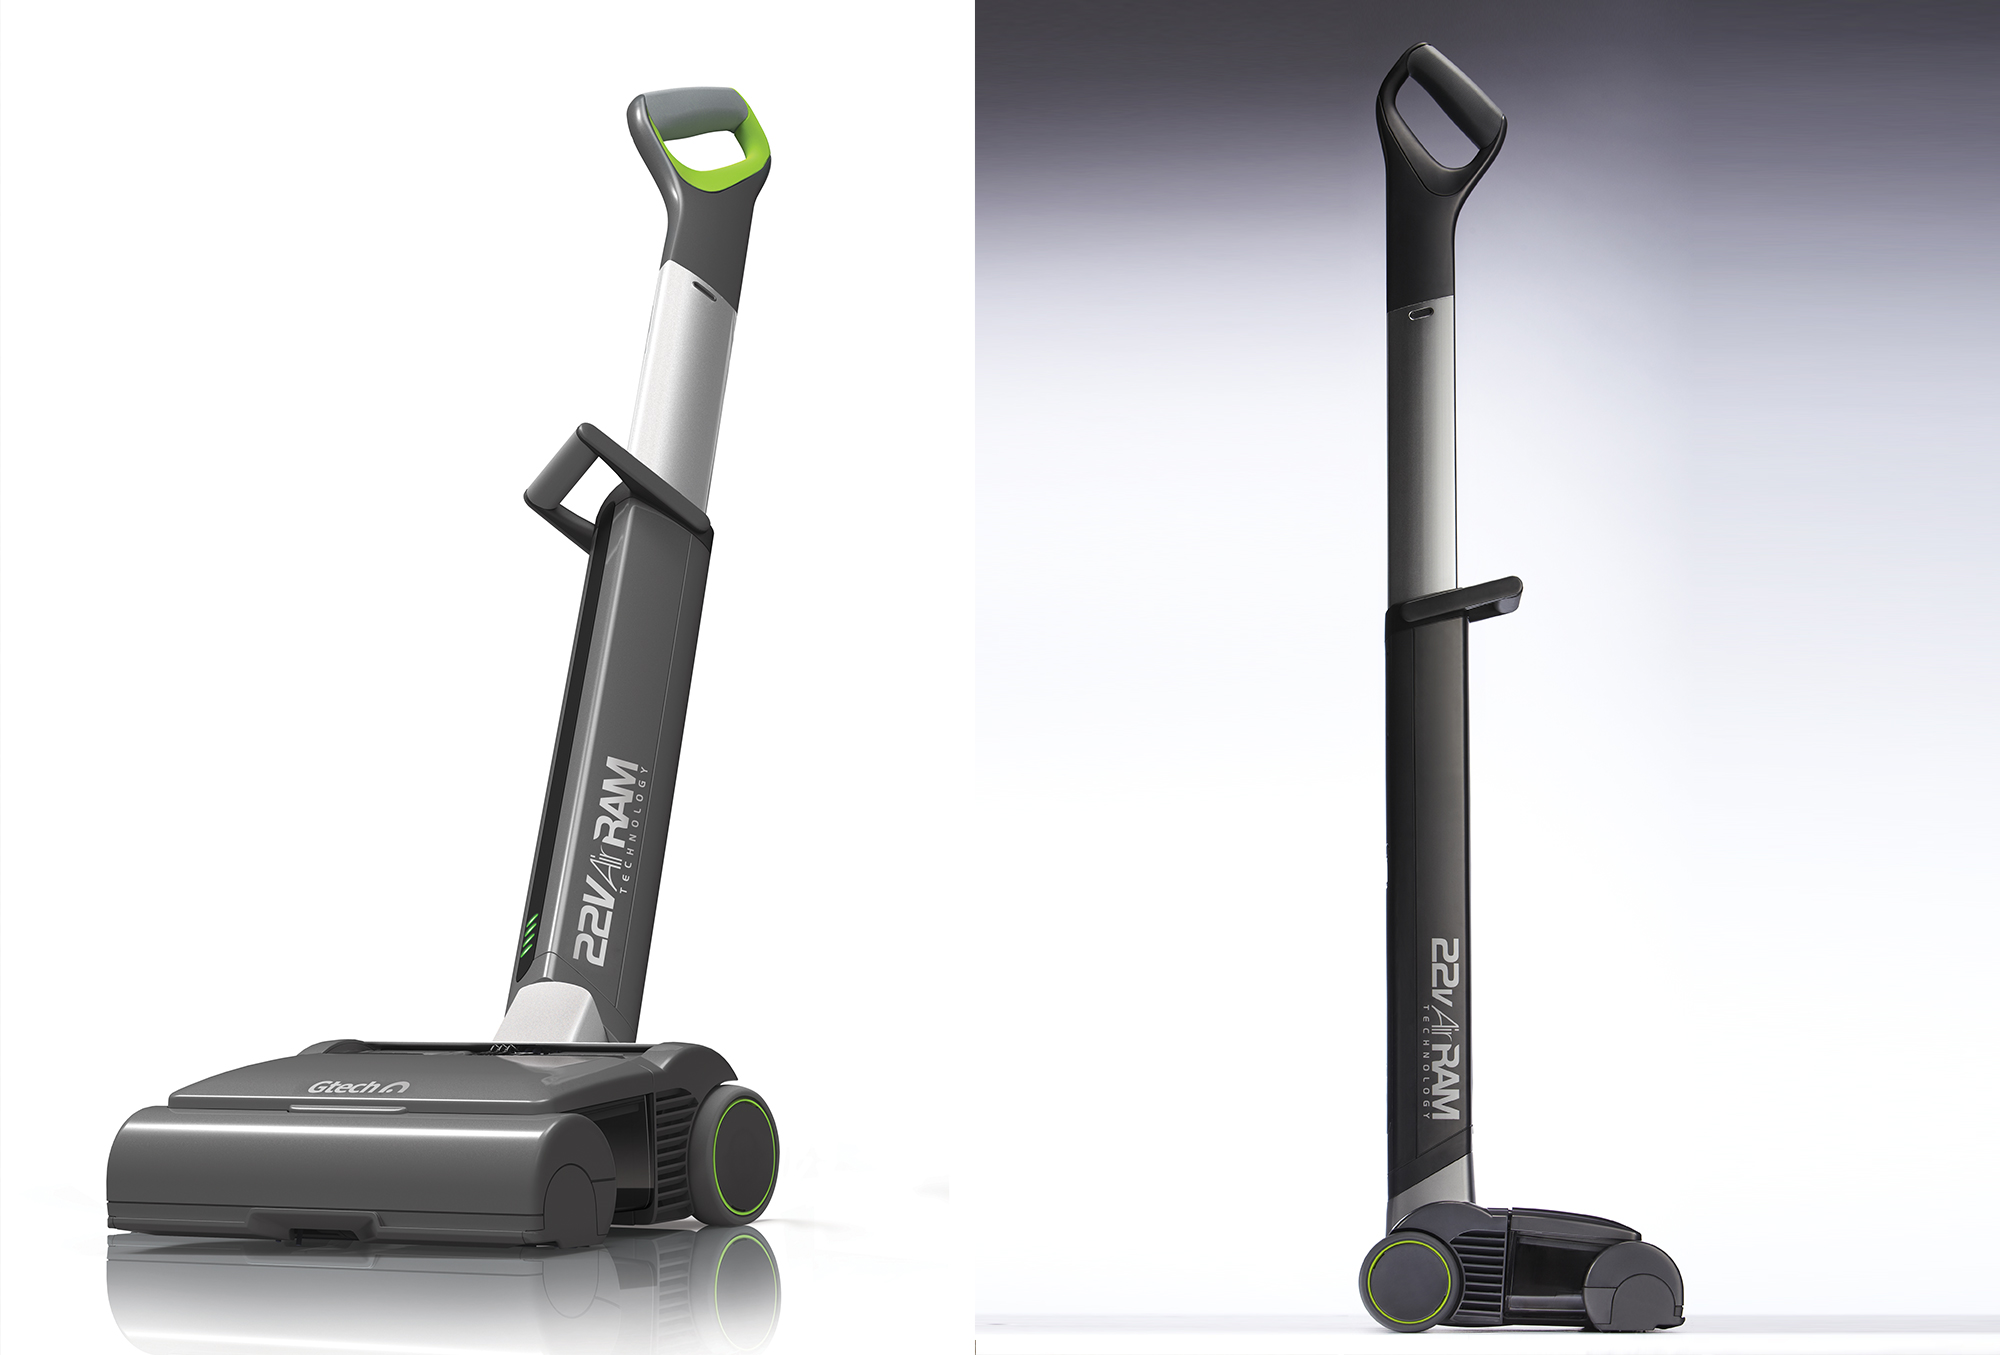 The Airram S High Tech Cleaning Vacuum Tracks Its Energy